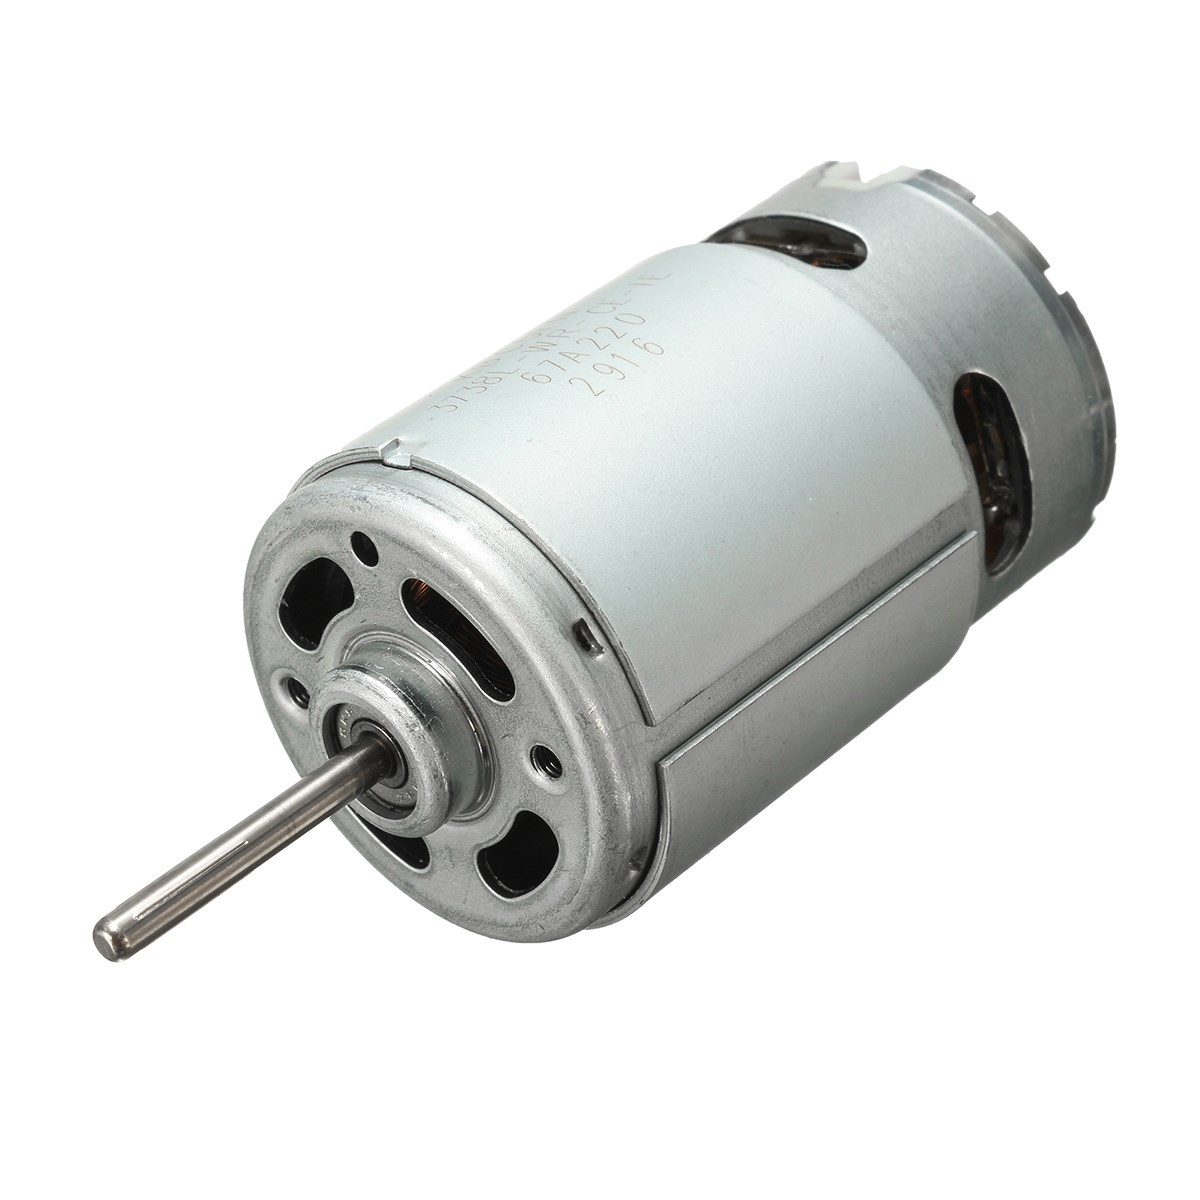 1pcs dc12 24v 555 ball bearing electric motor 2900rpm for Electric motor bearings suppliers